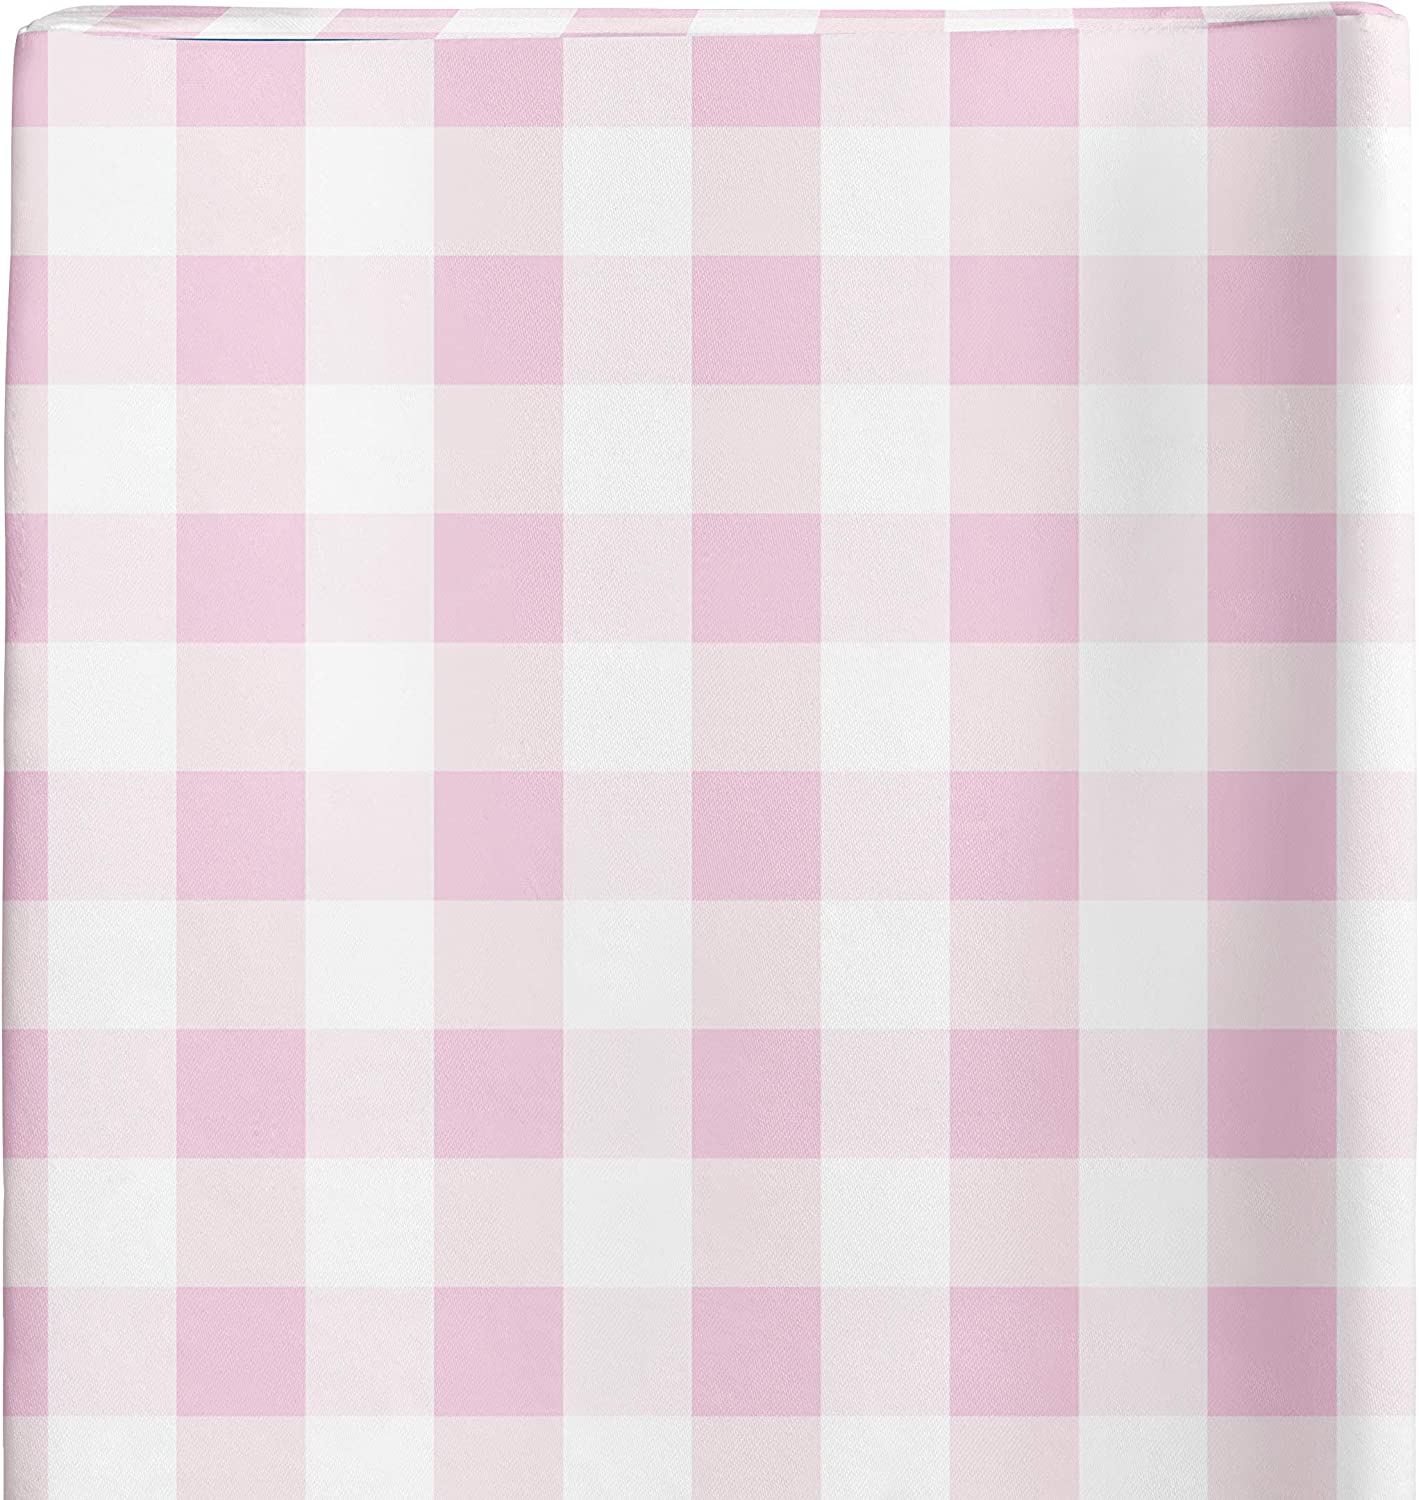 Baby Changing Table Covers for Girls Changing Pad Cover Girl Pink Gingham Plaid Farmhouse Nursery Decor by JLIKA